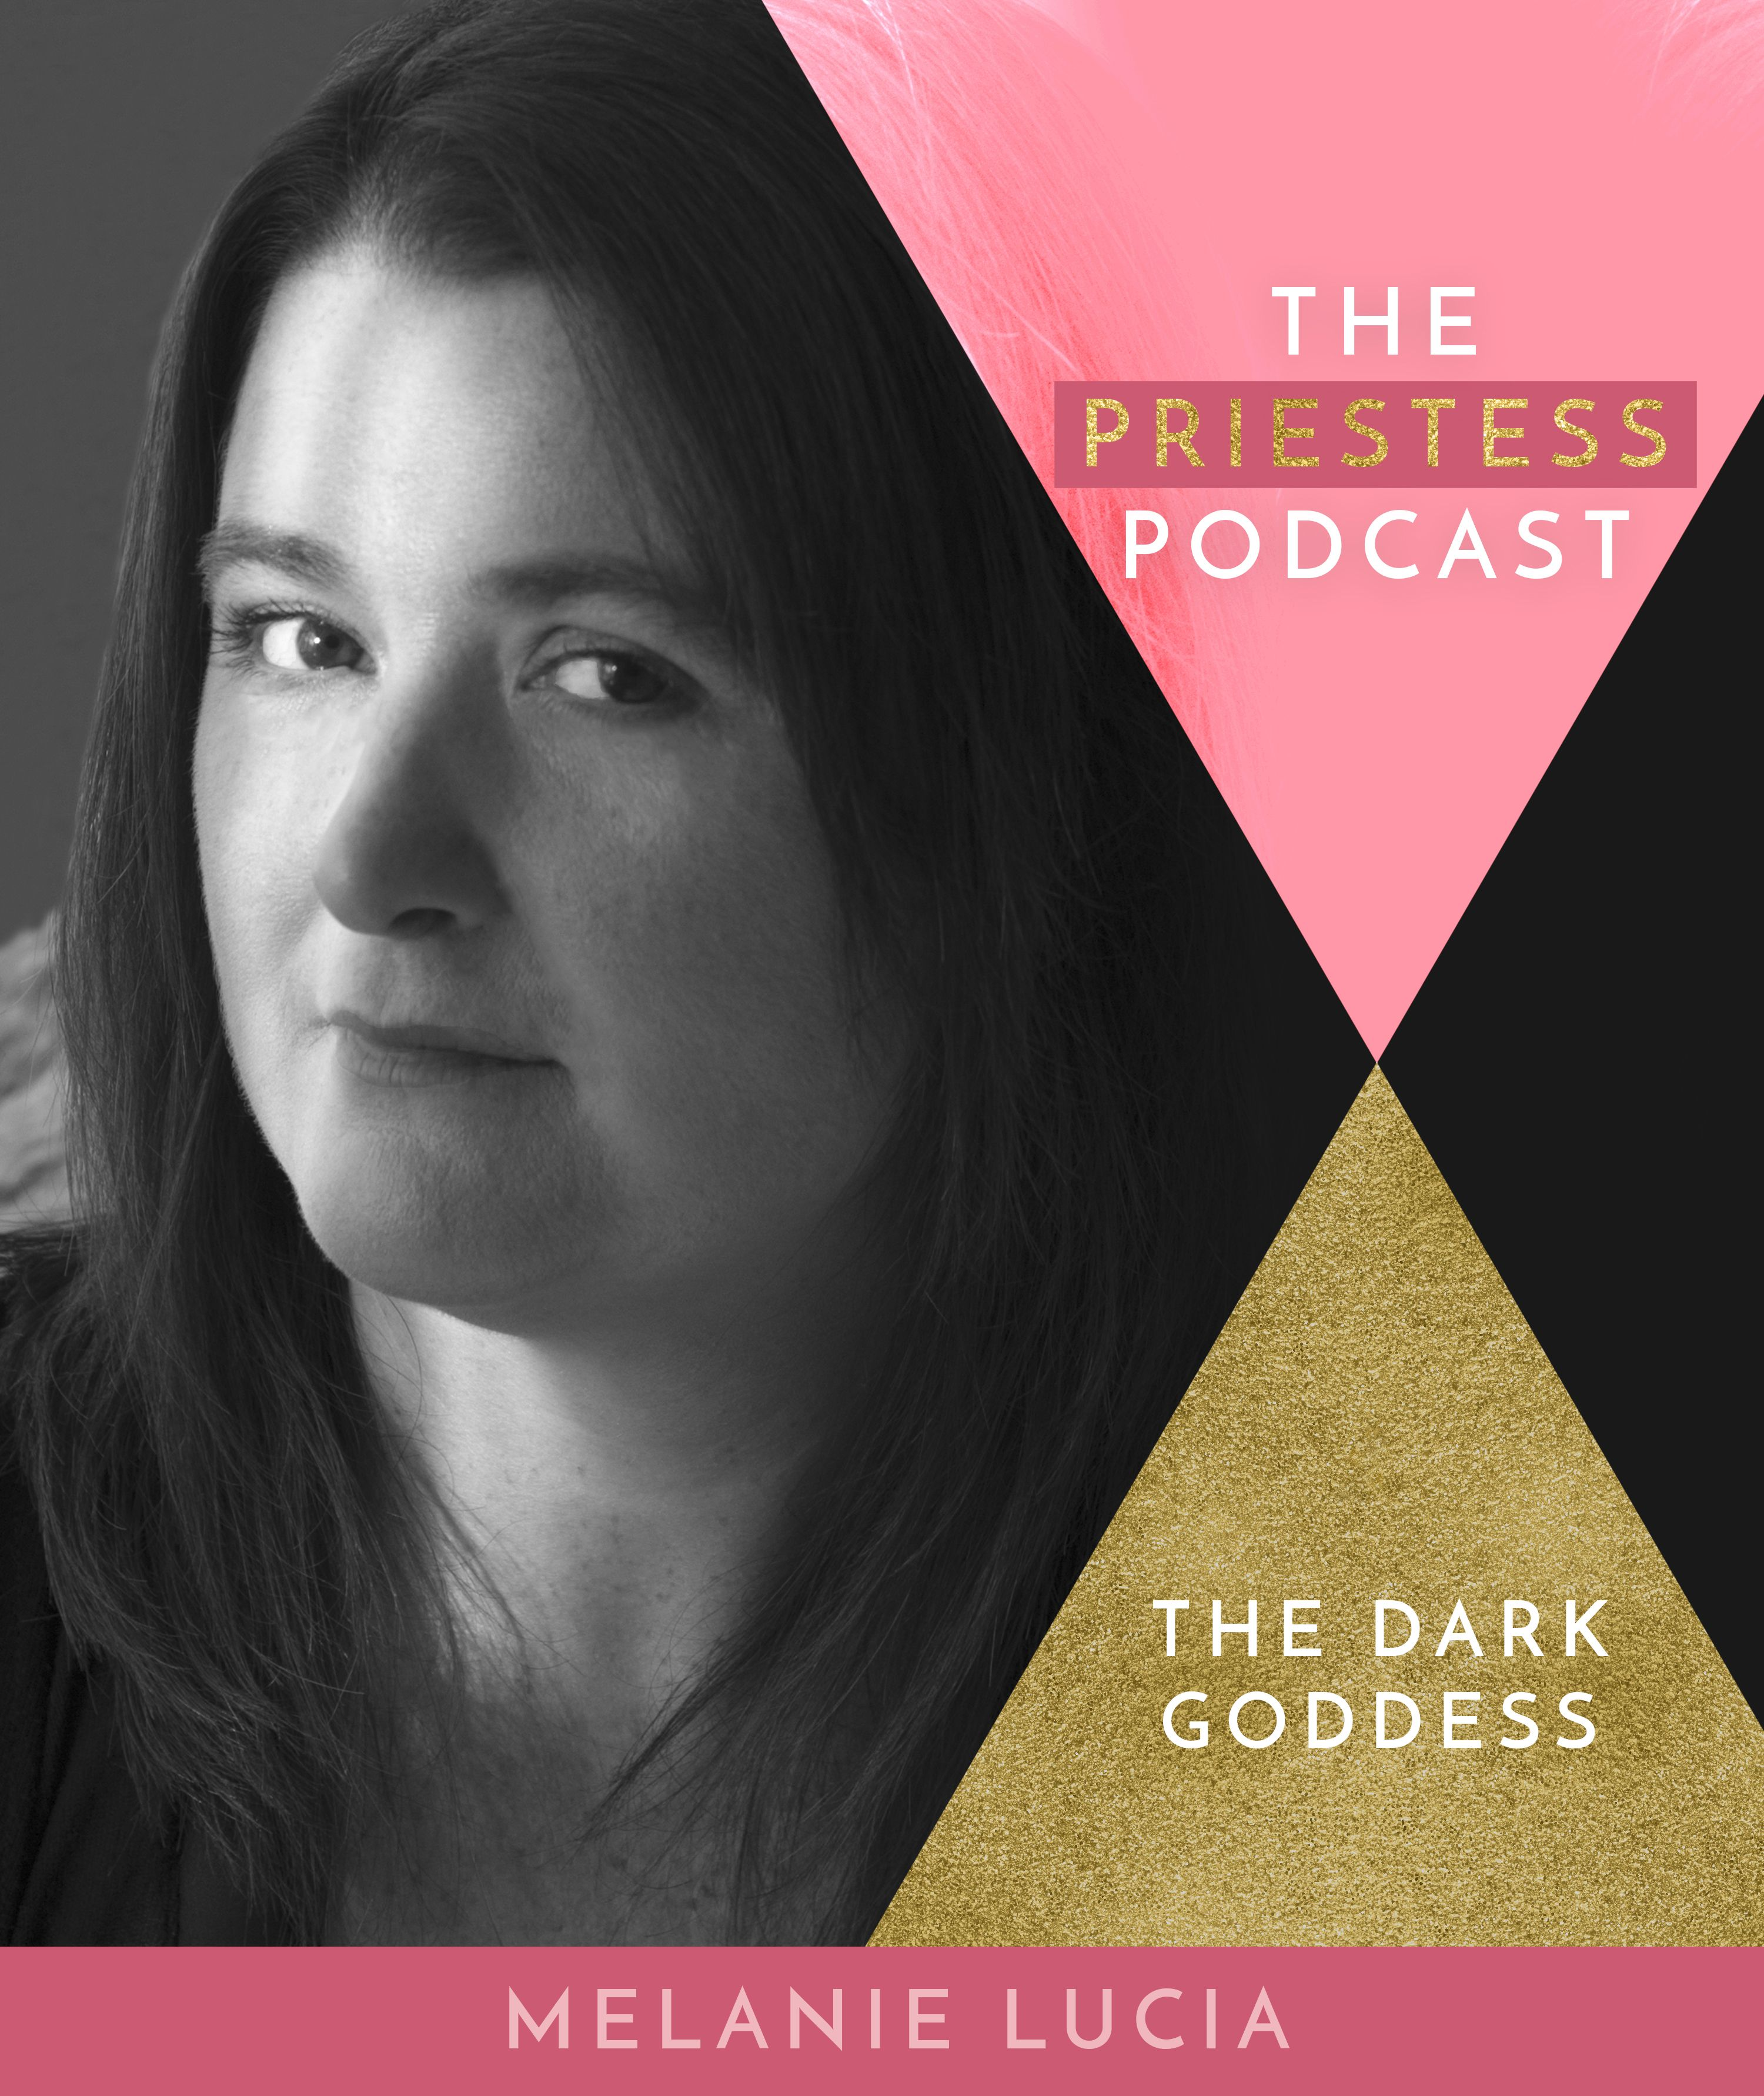 Melanie Lucia joins the Priestess Podcast to discuss the